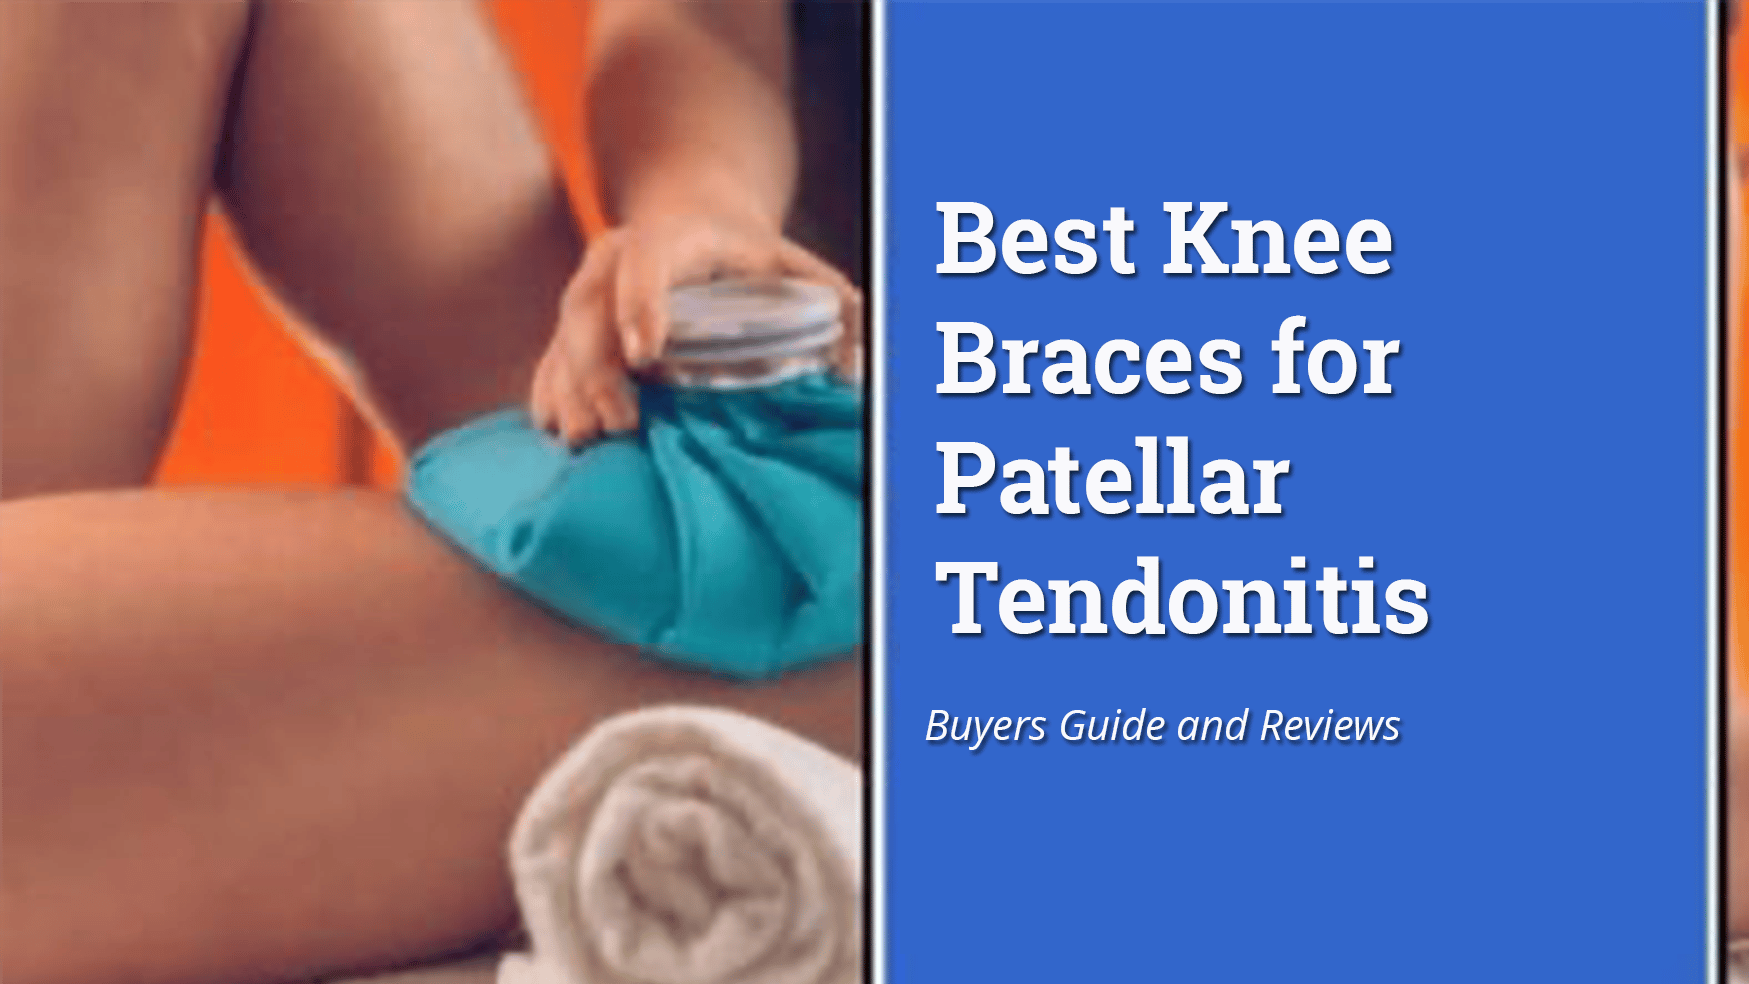 This guide will talk about the different types of knee braces that can work best for patellar tendonitis, a painful condition resulting from knee injury.